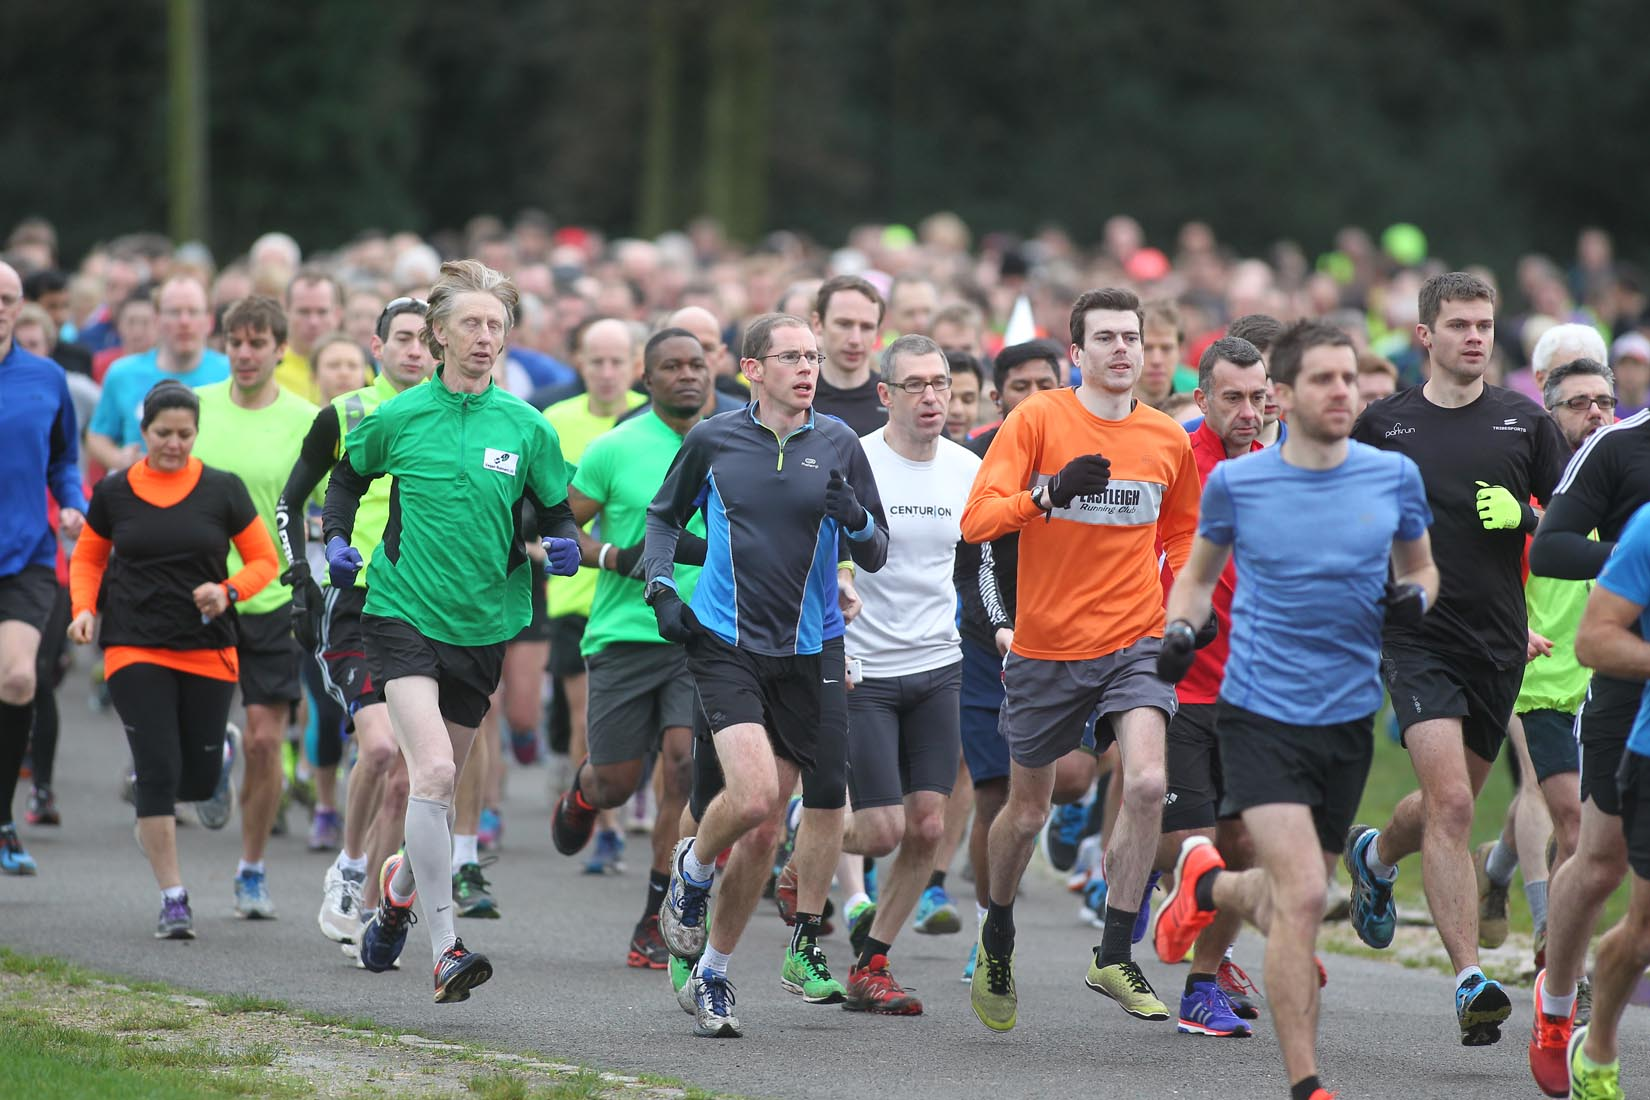 GALLERY: Hundreds of runners take over Southampton park